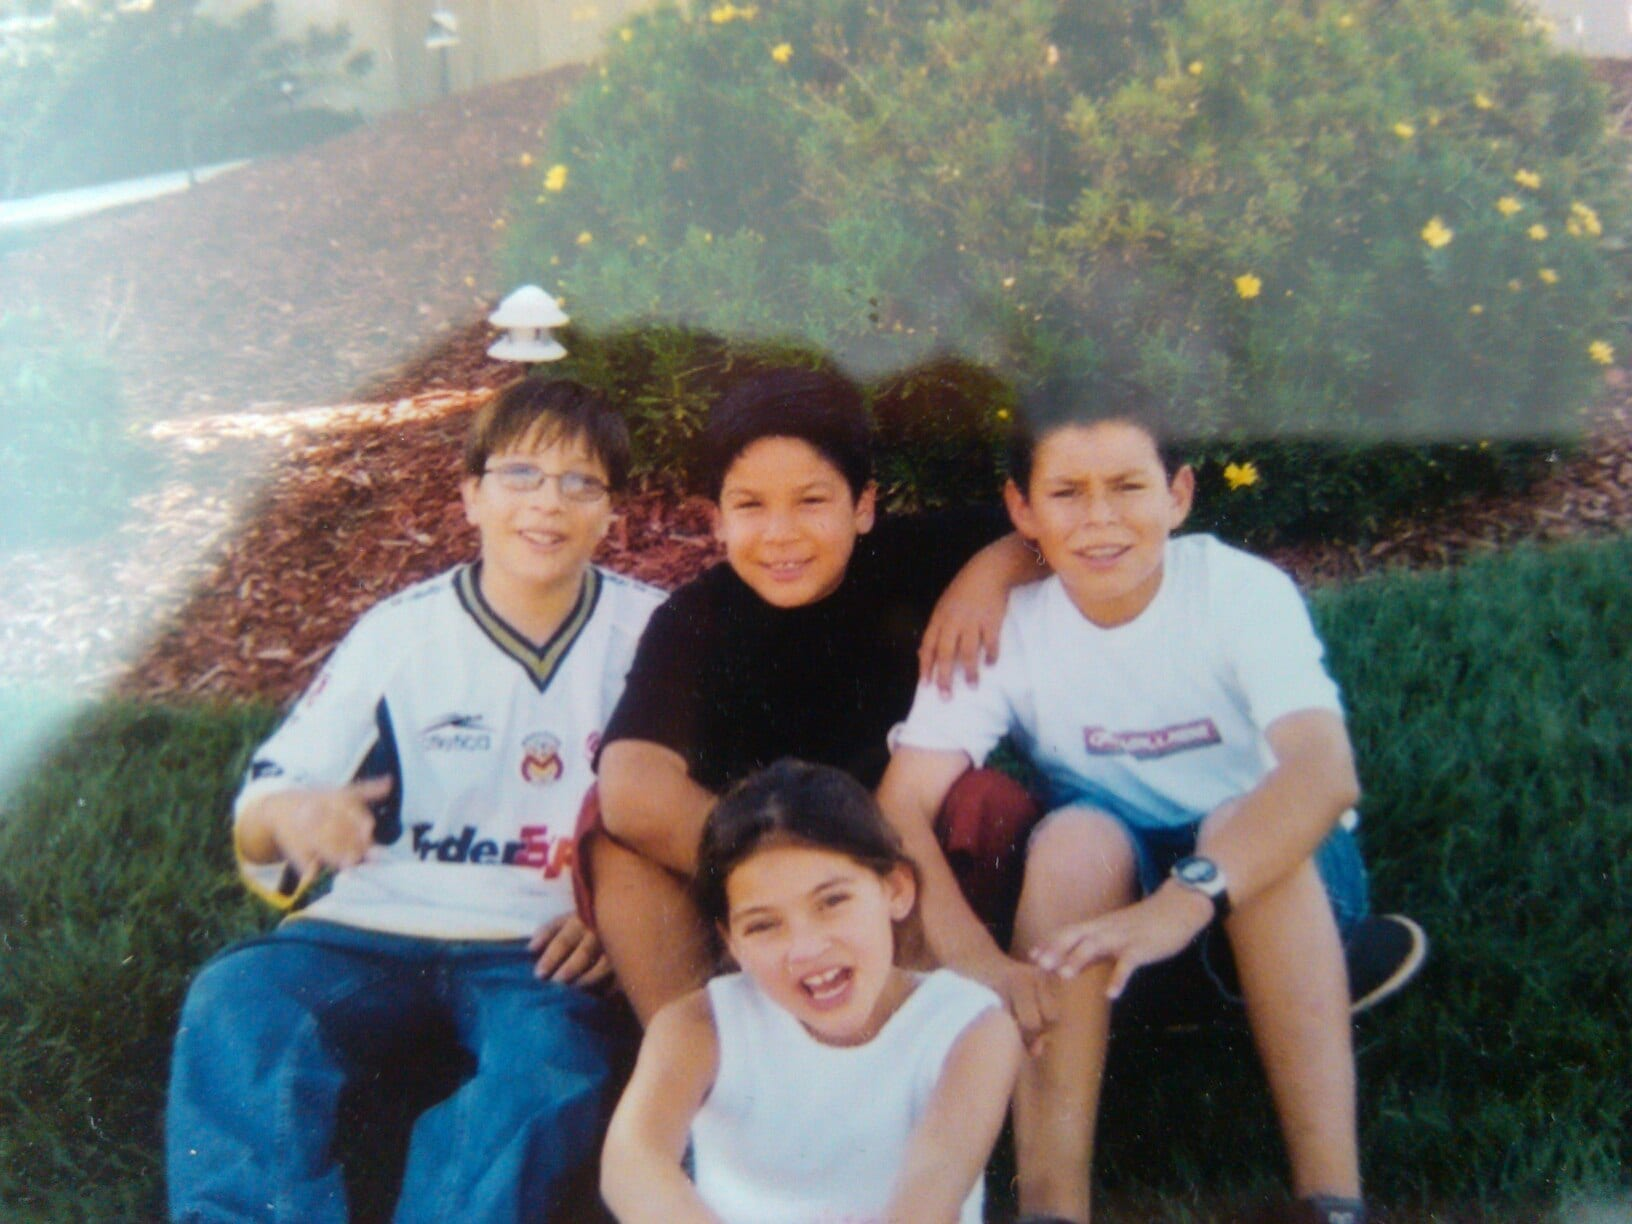 Jose Moreno, Javy Moreno, Anthony Moreno, and Samantha Moreno sitting on the grass